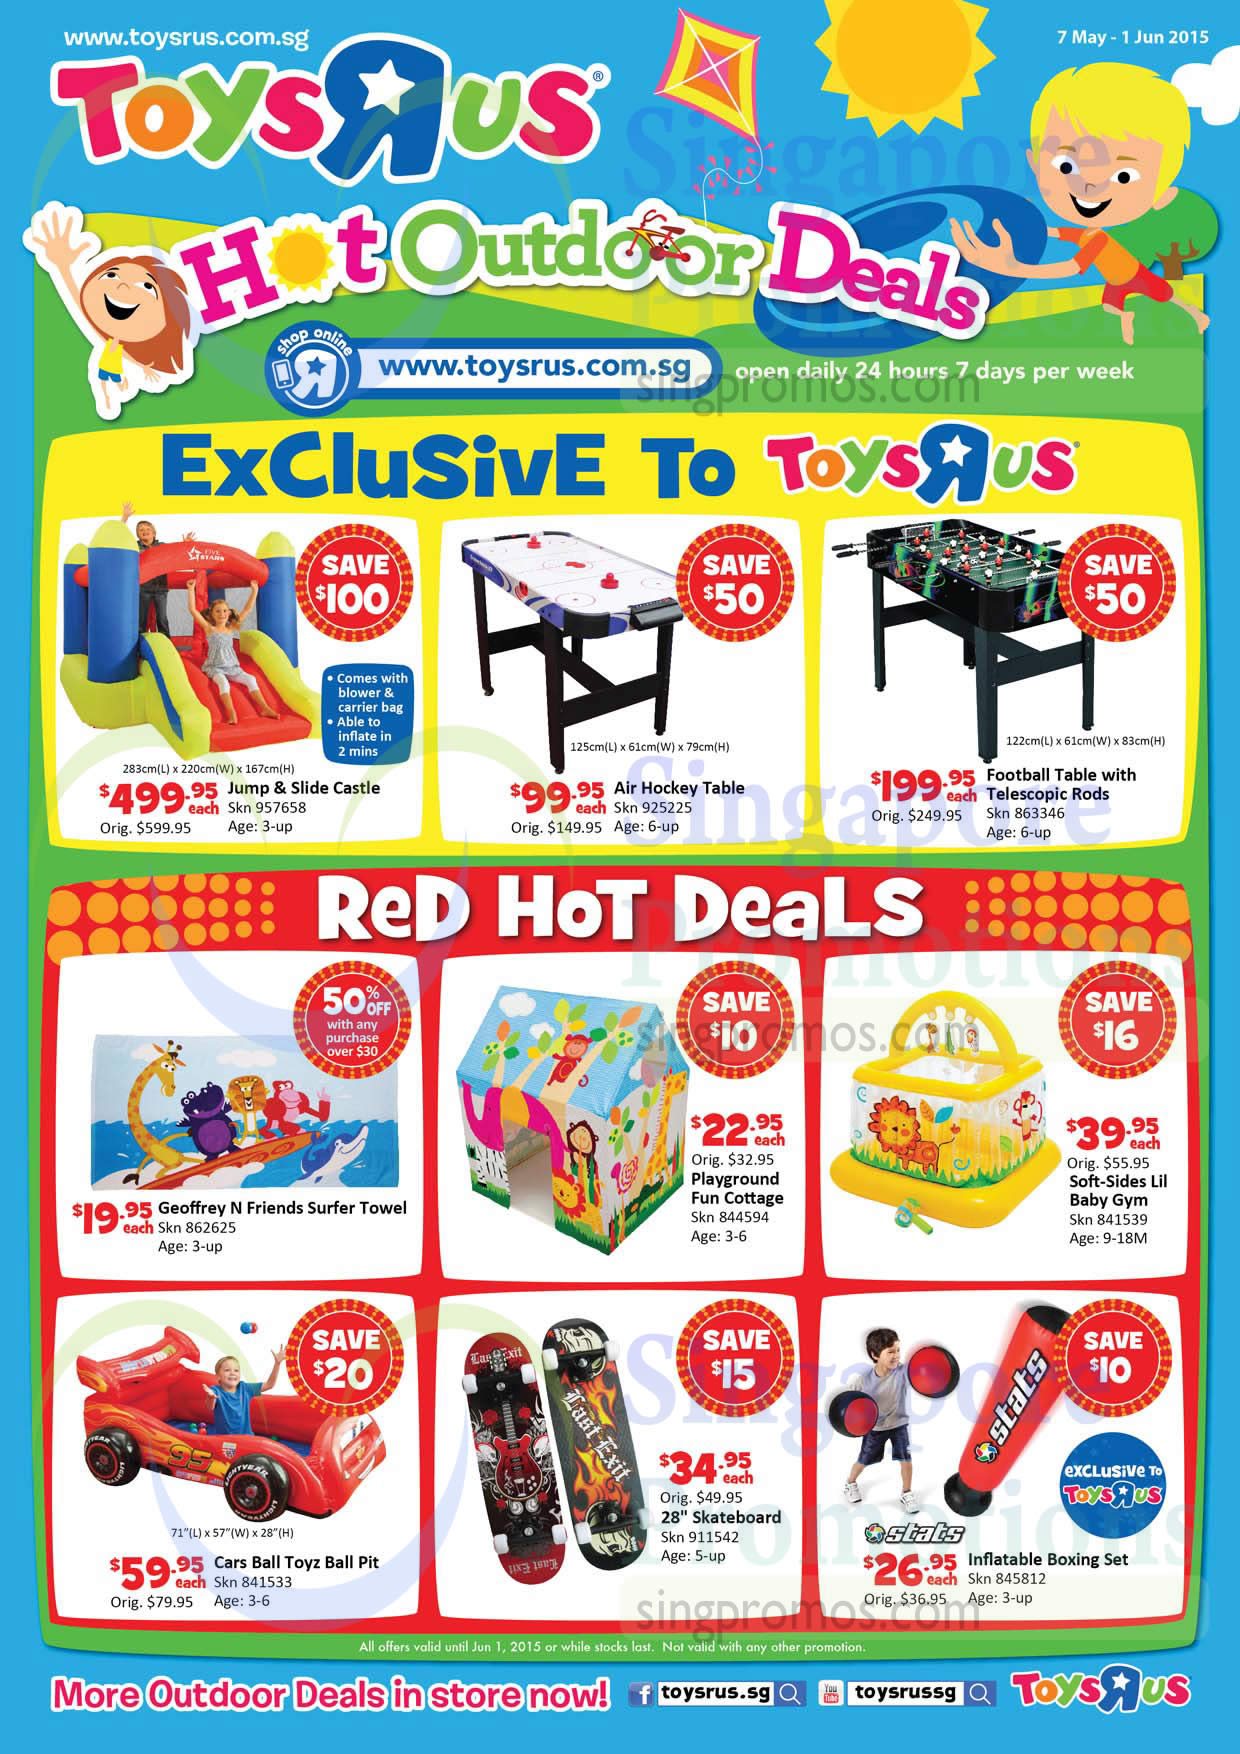 "Jump n Slide Castle, Air Hockey Table, Football Table with Telescopic Rods, Soft-Sides Lil Baby Gym, 28""Skateboard, Cars Ball Toyz Ball Pit"